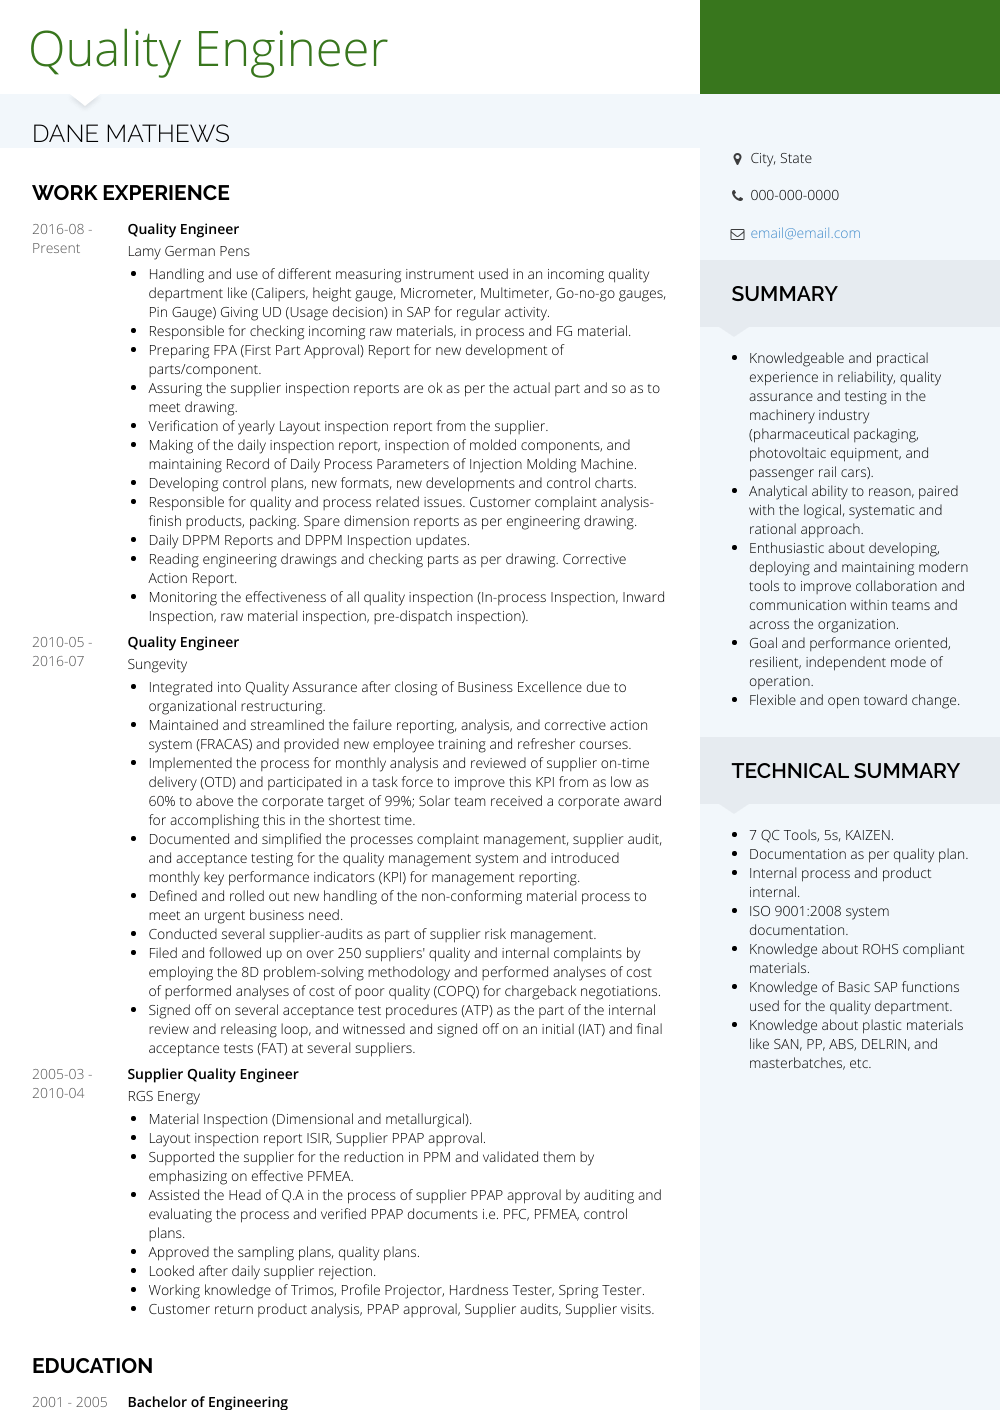 Quality Engineer Resume Sample and Template